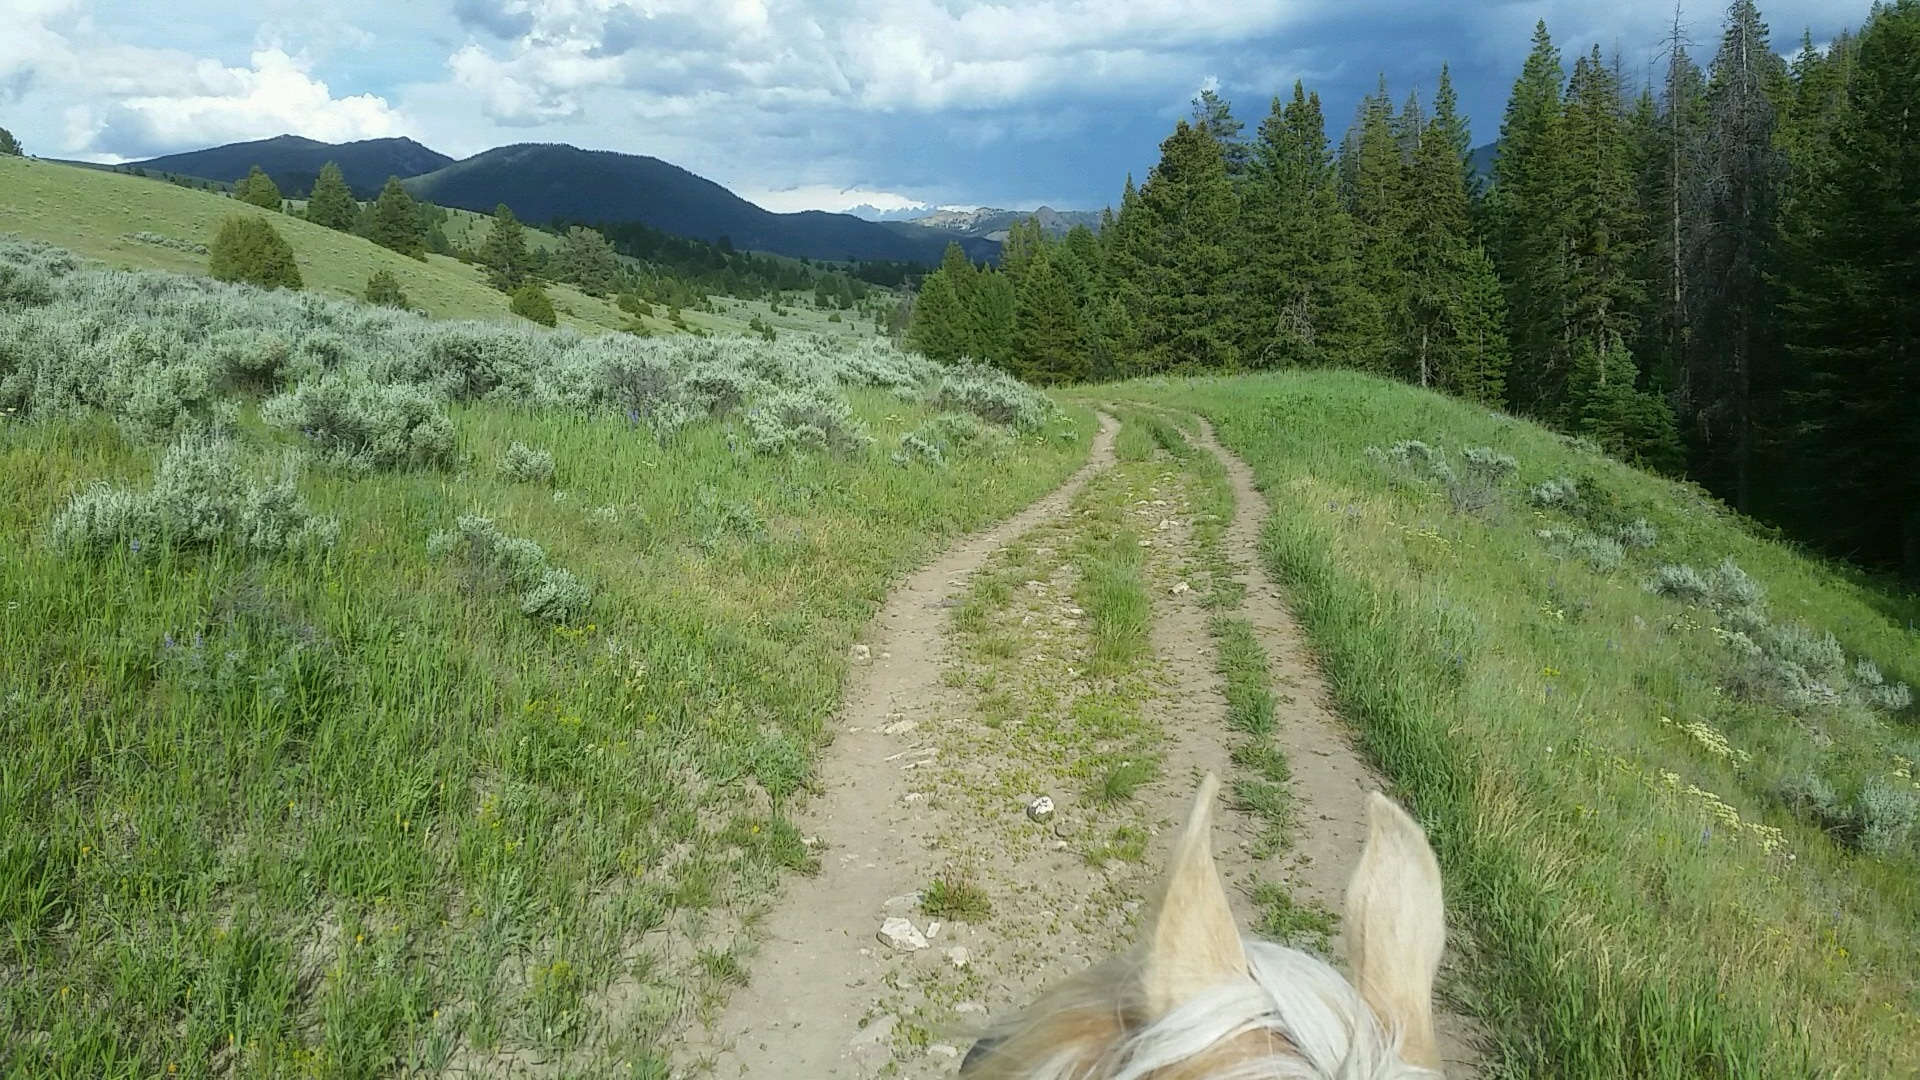 This is Lilly Belle. She is a palomino Missouri Fox Trotter mare. Here we are exploring Porcupine Creek Valley on a stormy July day last summer. She is a particularly sweet girl and i really enjoy spending time with her. Being with Lilly Belle is a relaxing salve.